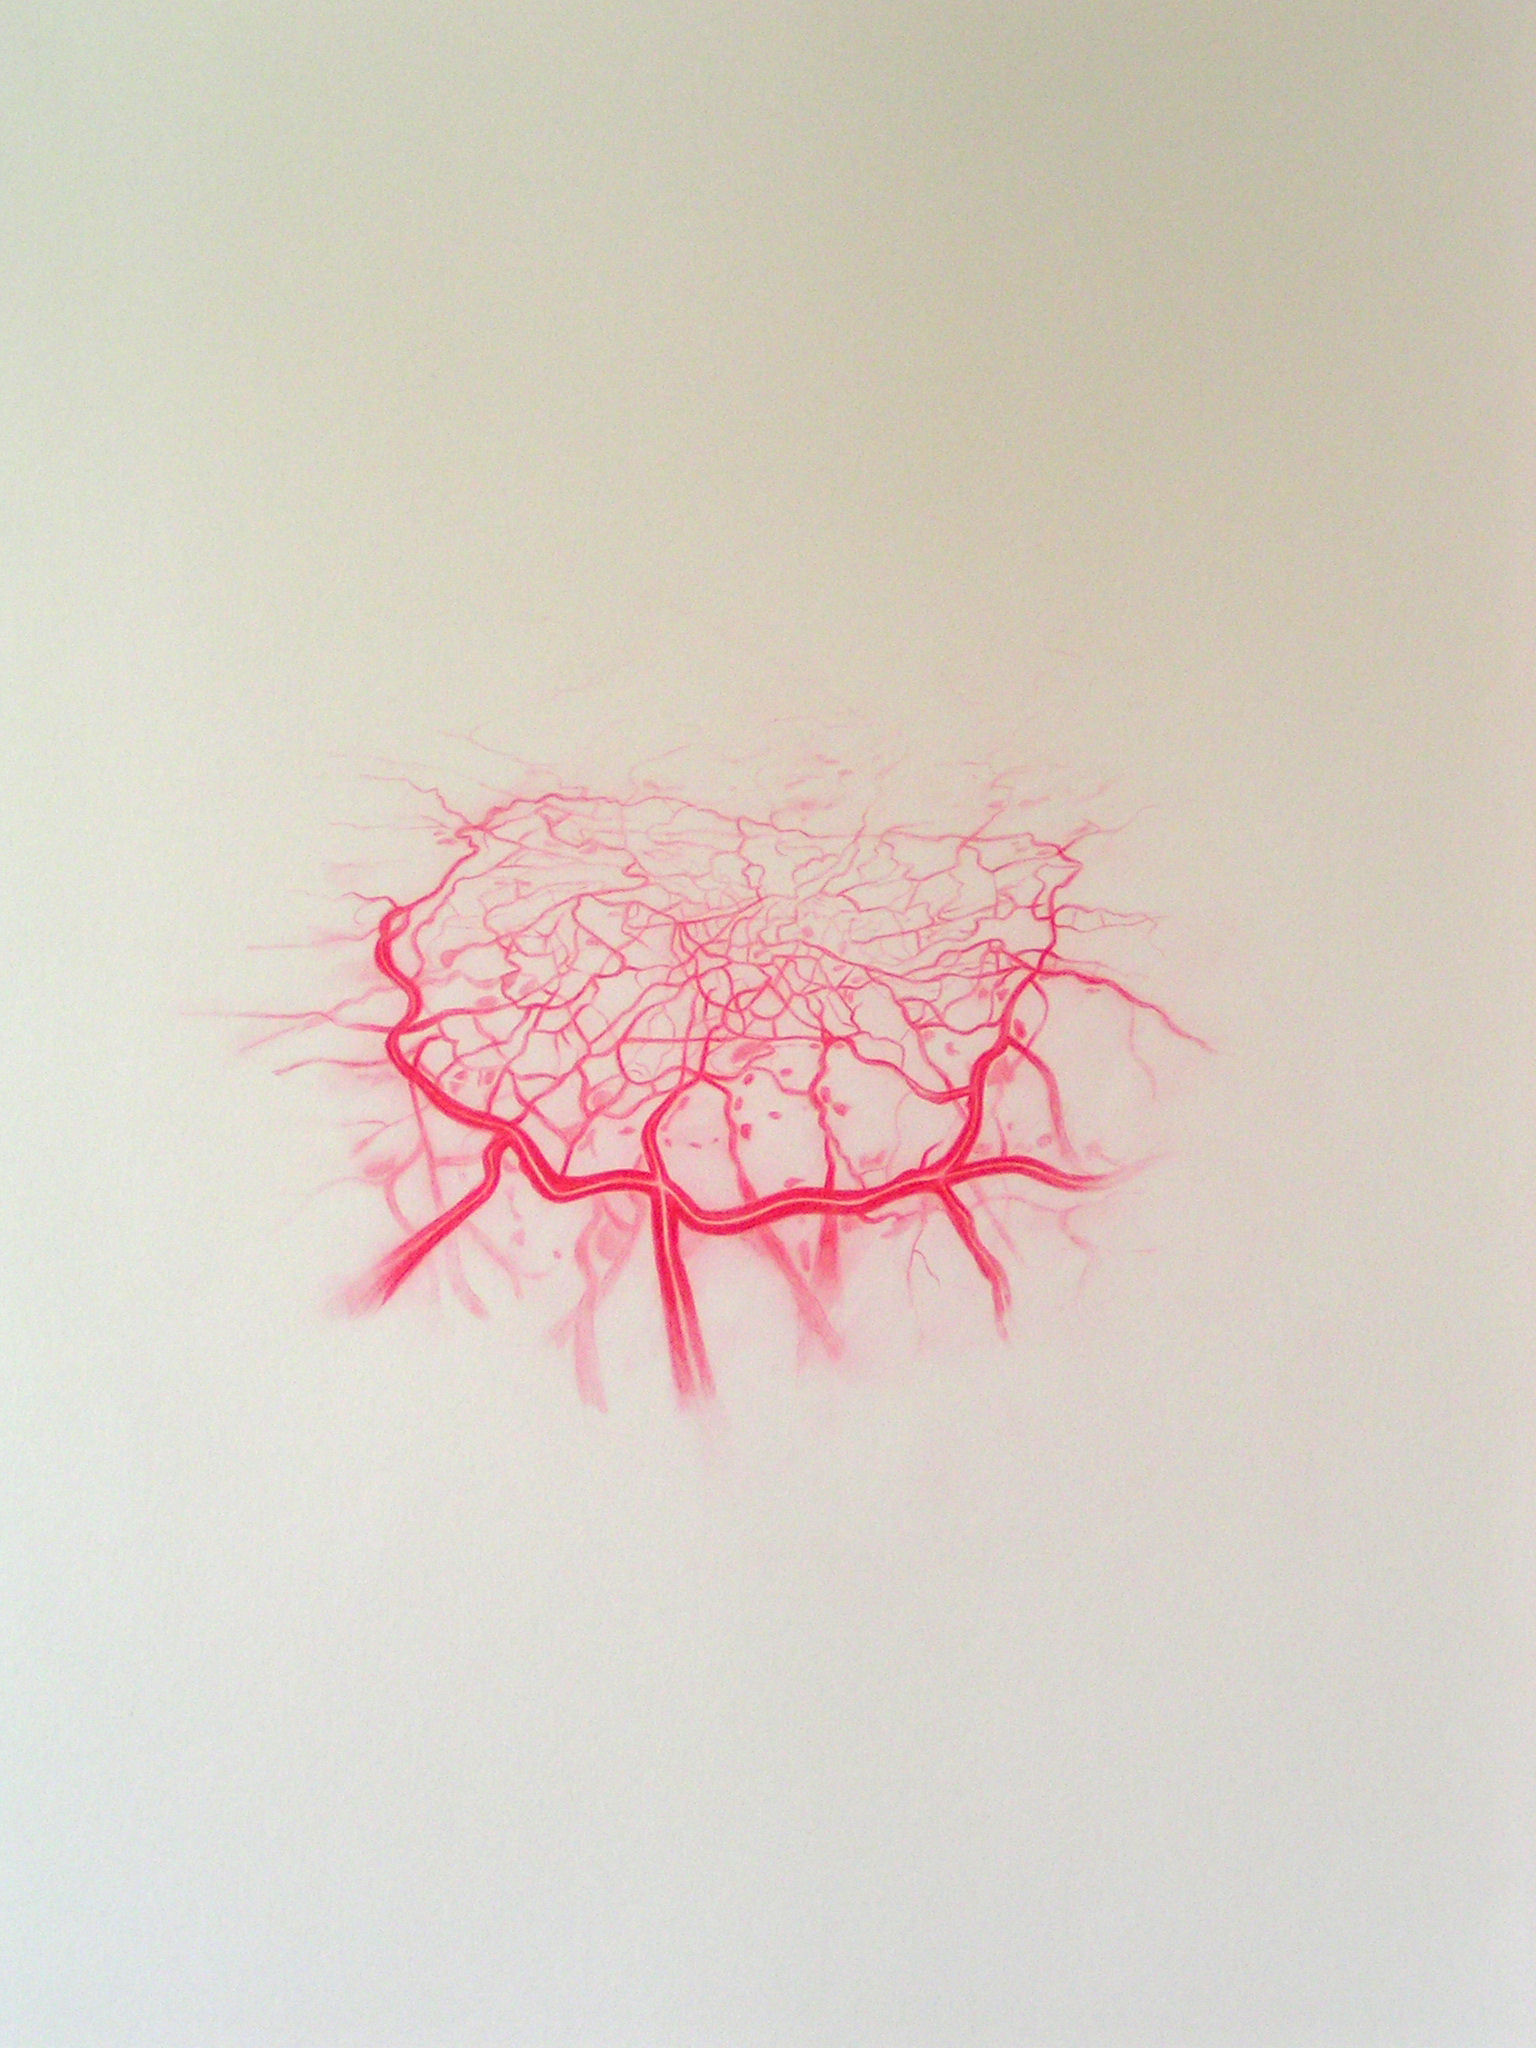 Emma J Williams 'Untitled Red Drawing No.9' 2008 pencil on paper